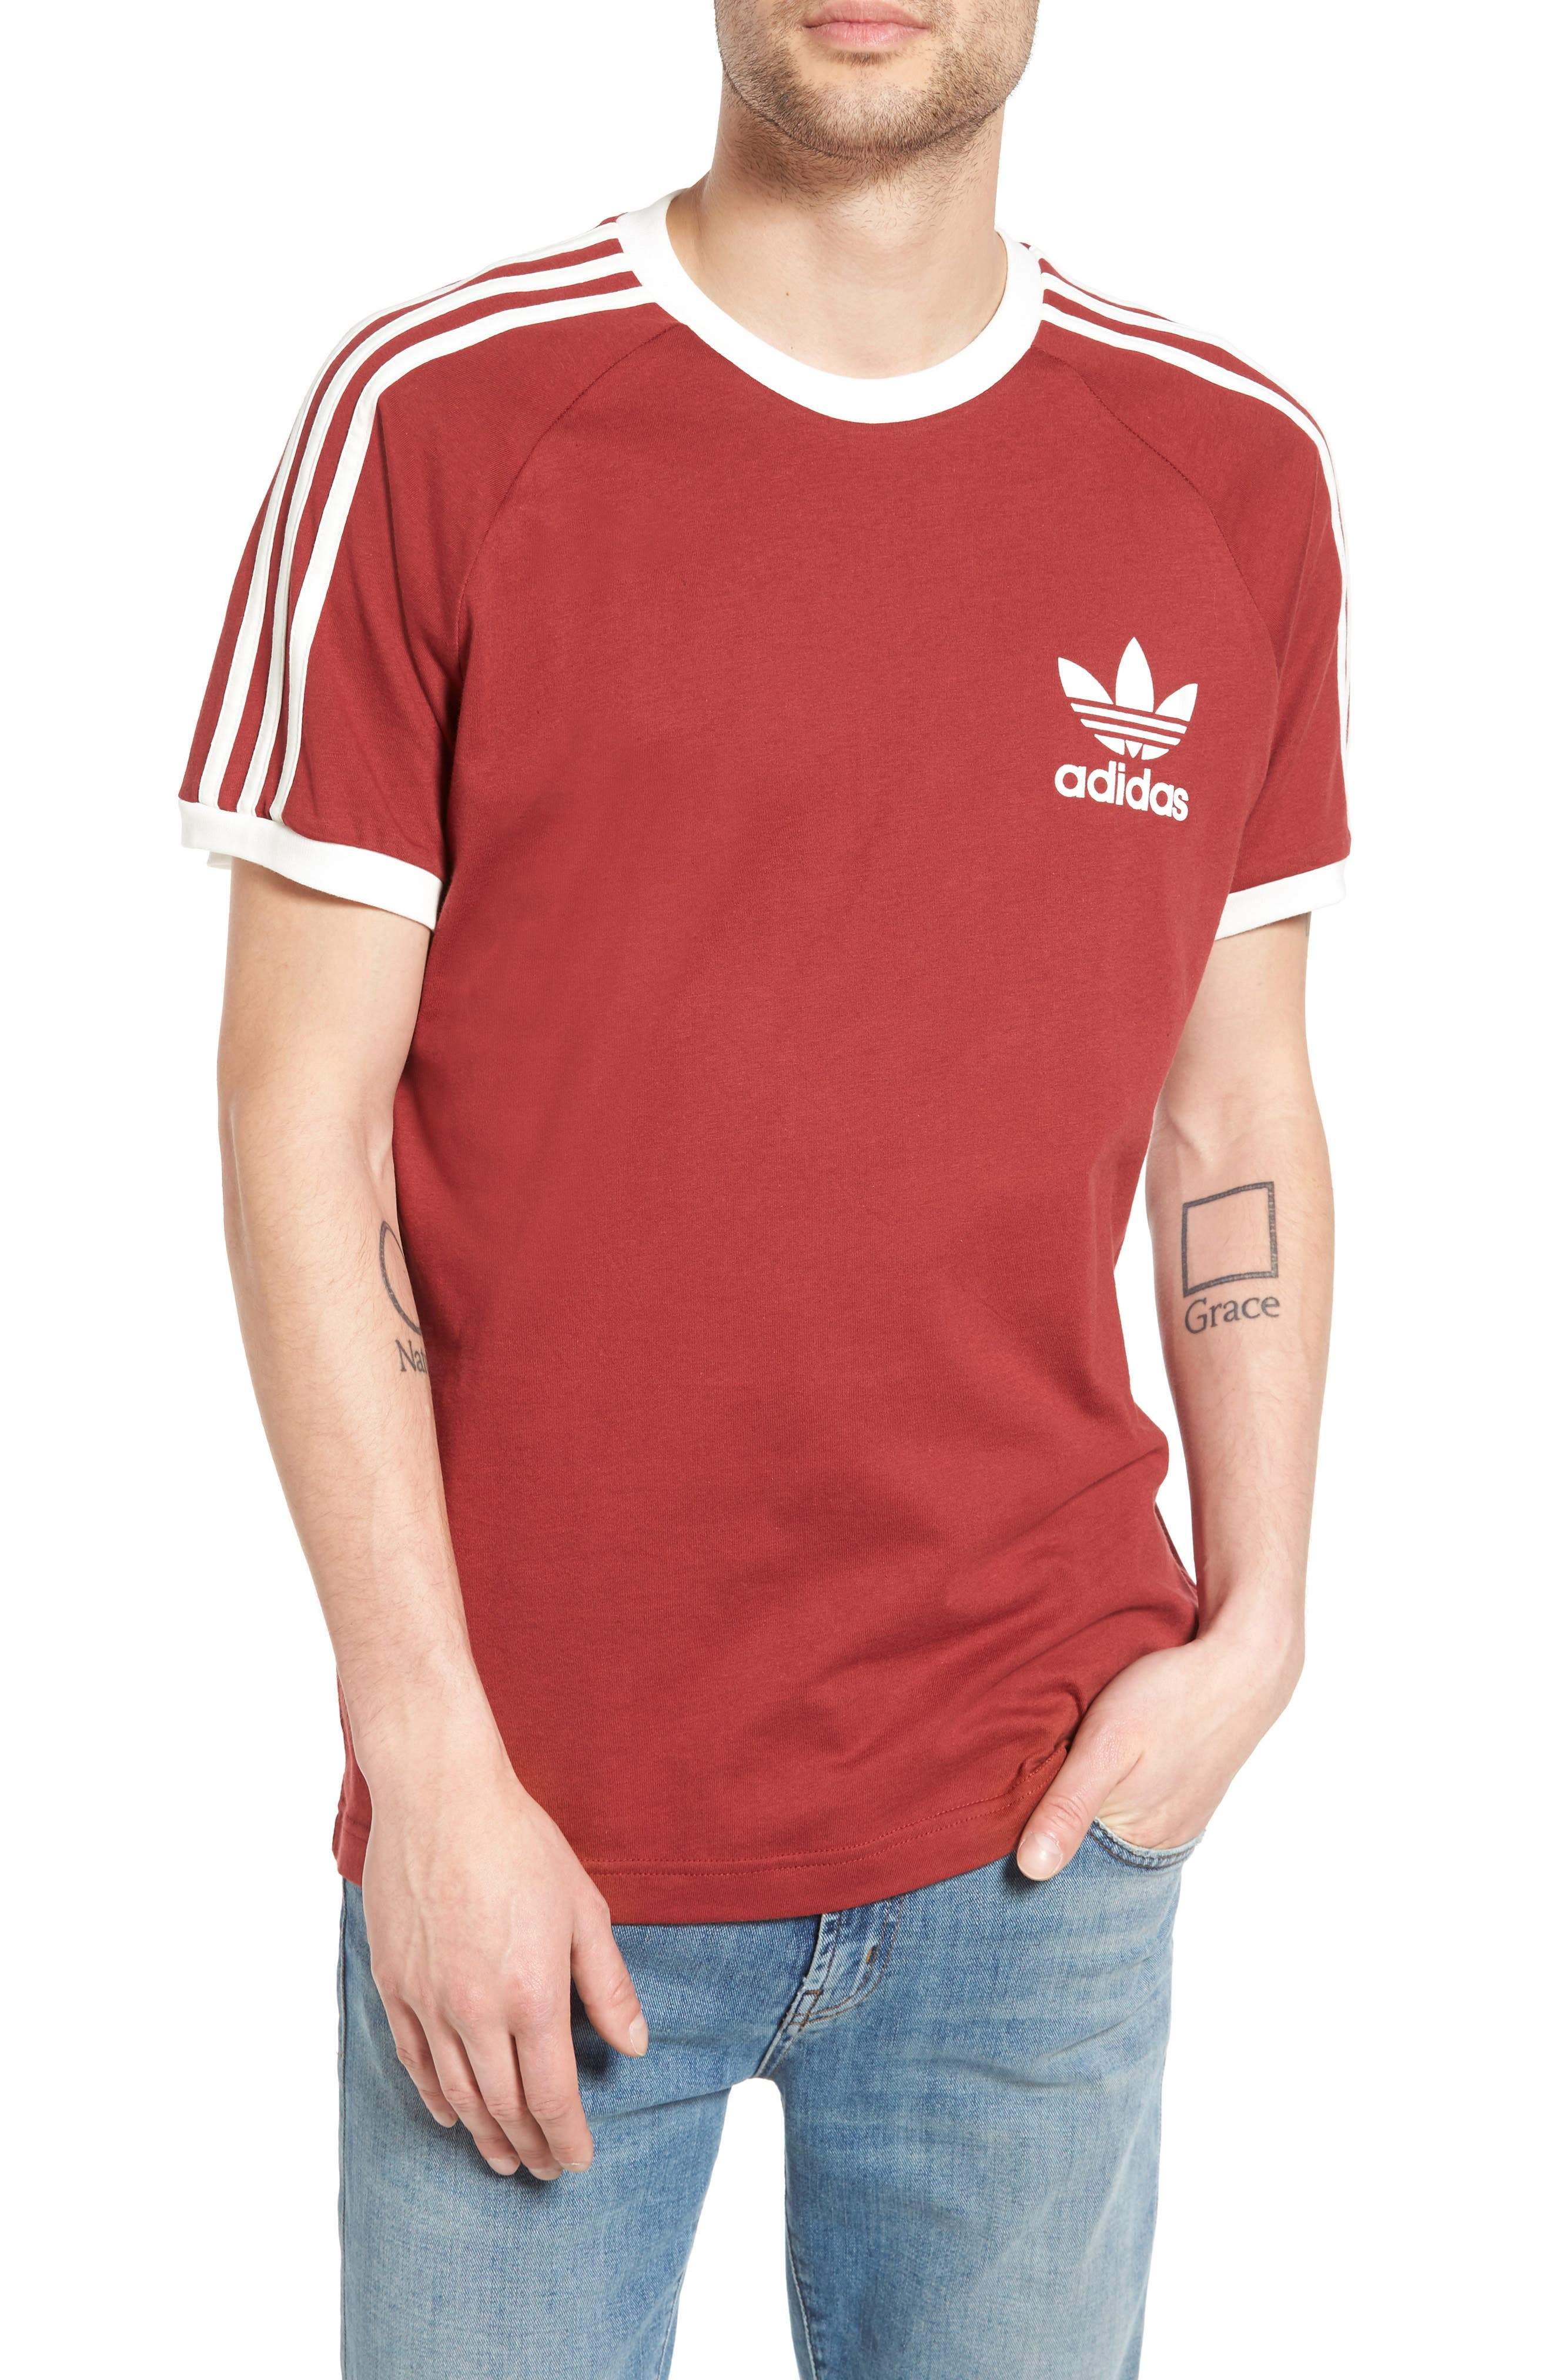 Main Image - adidas Originals 'California' Raglan Crewneck T-Shirt